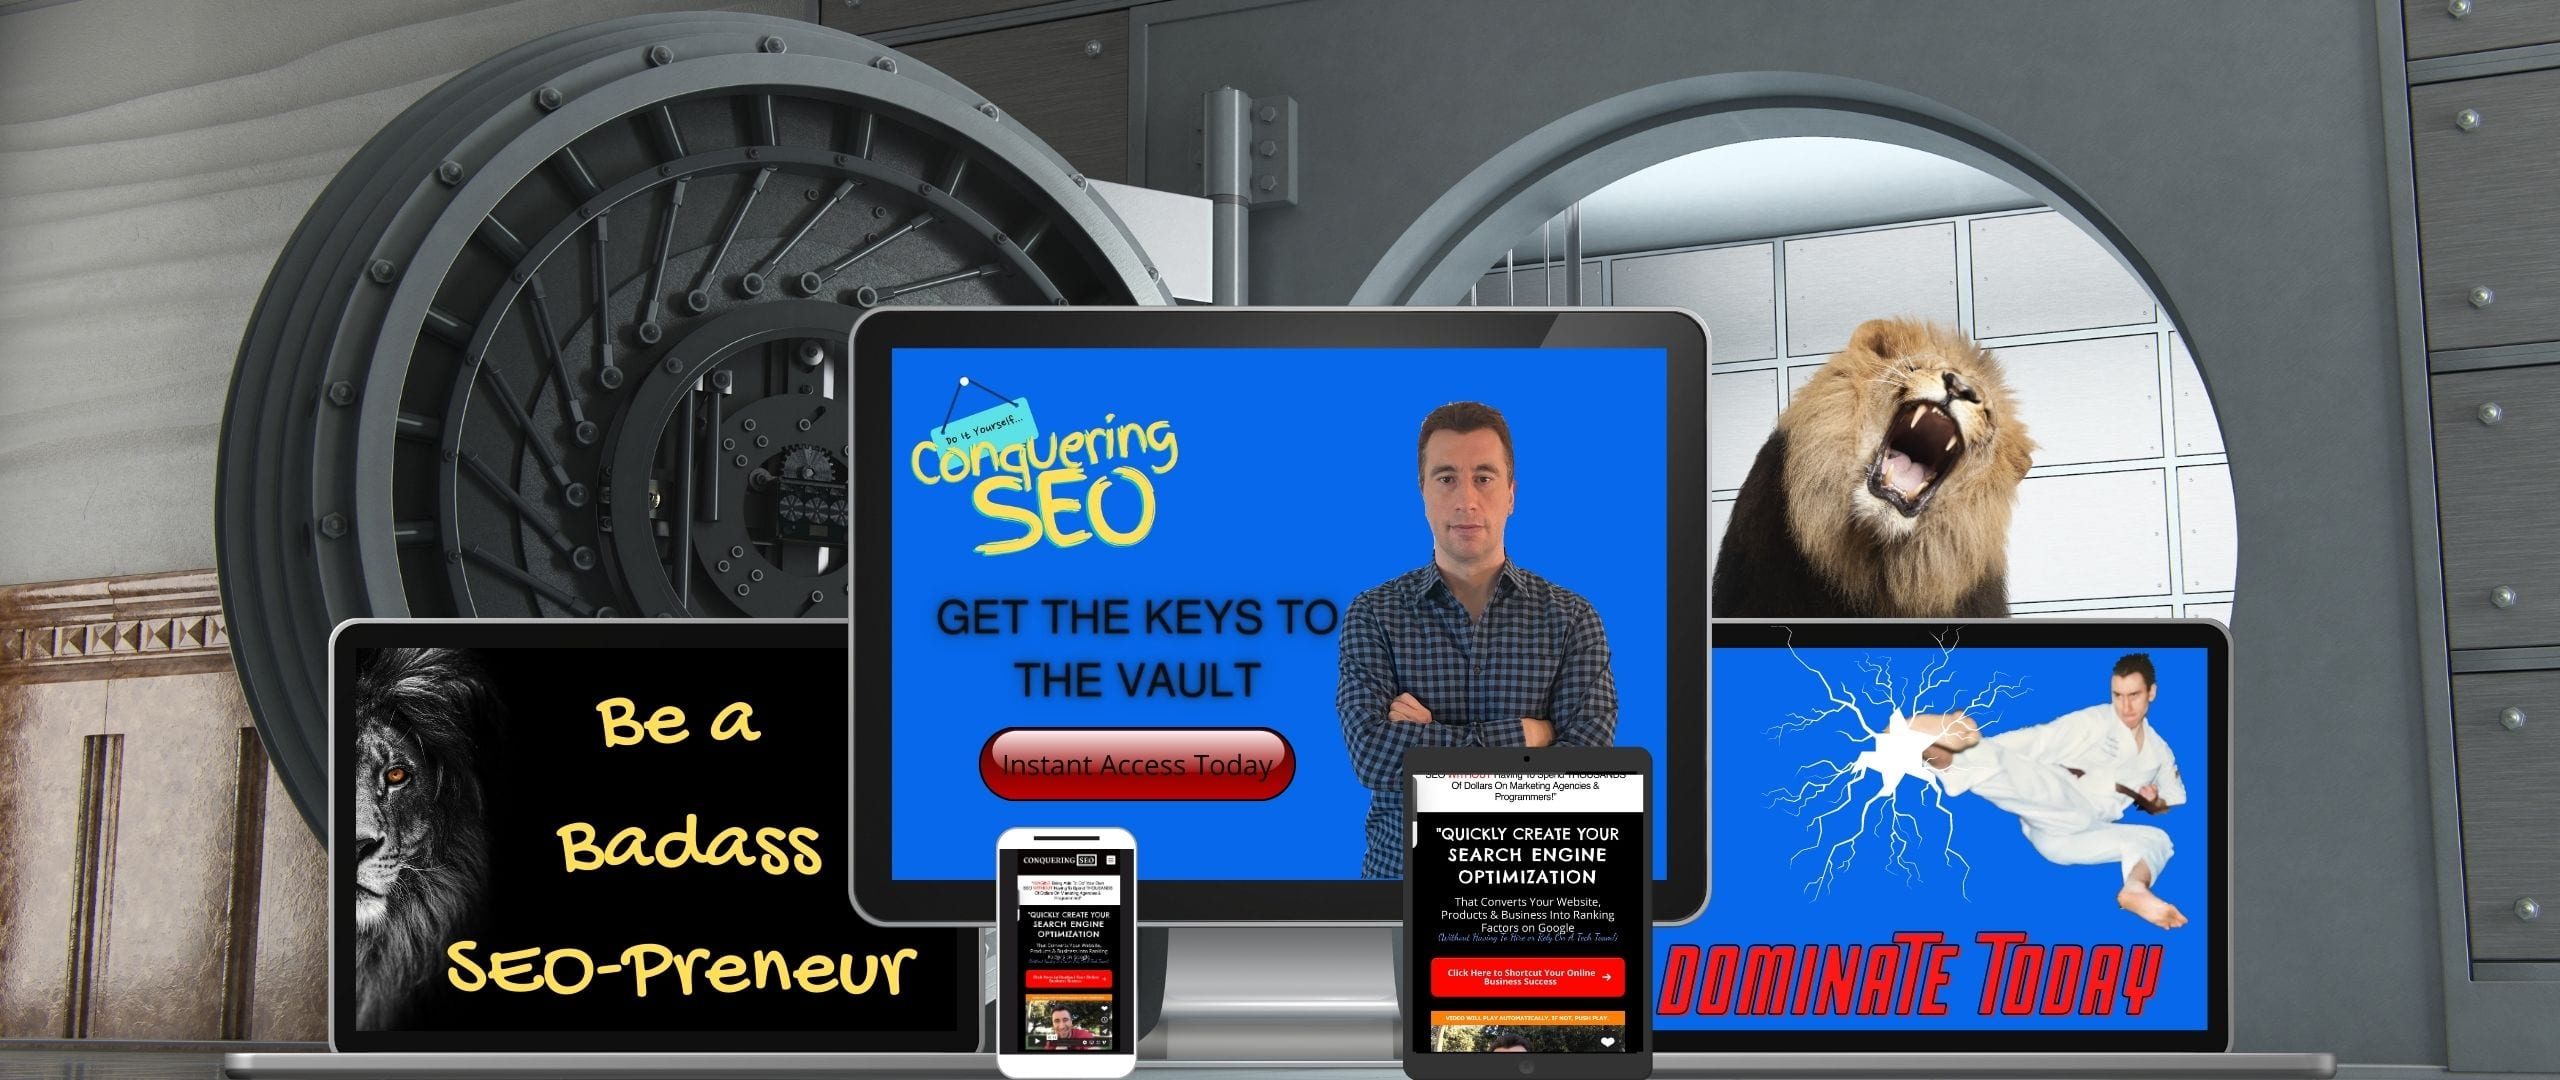 picture of the conquering seo product image of opening the vault